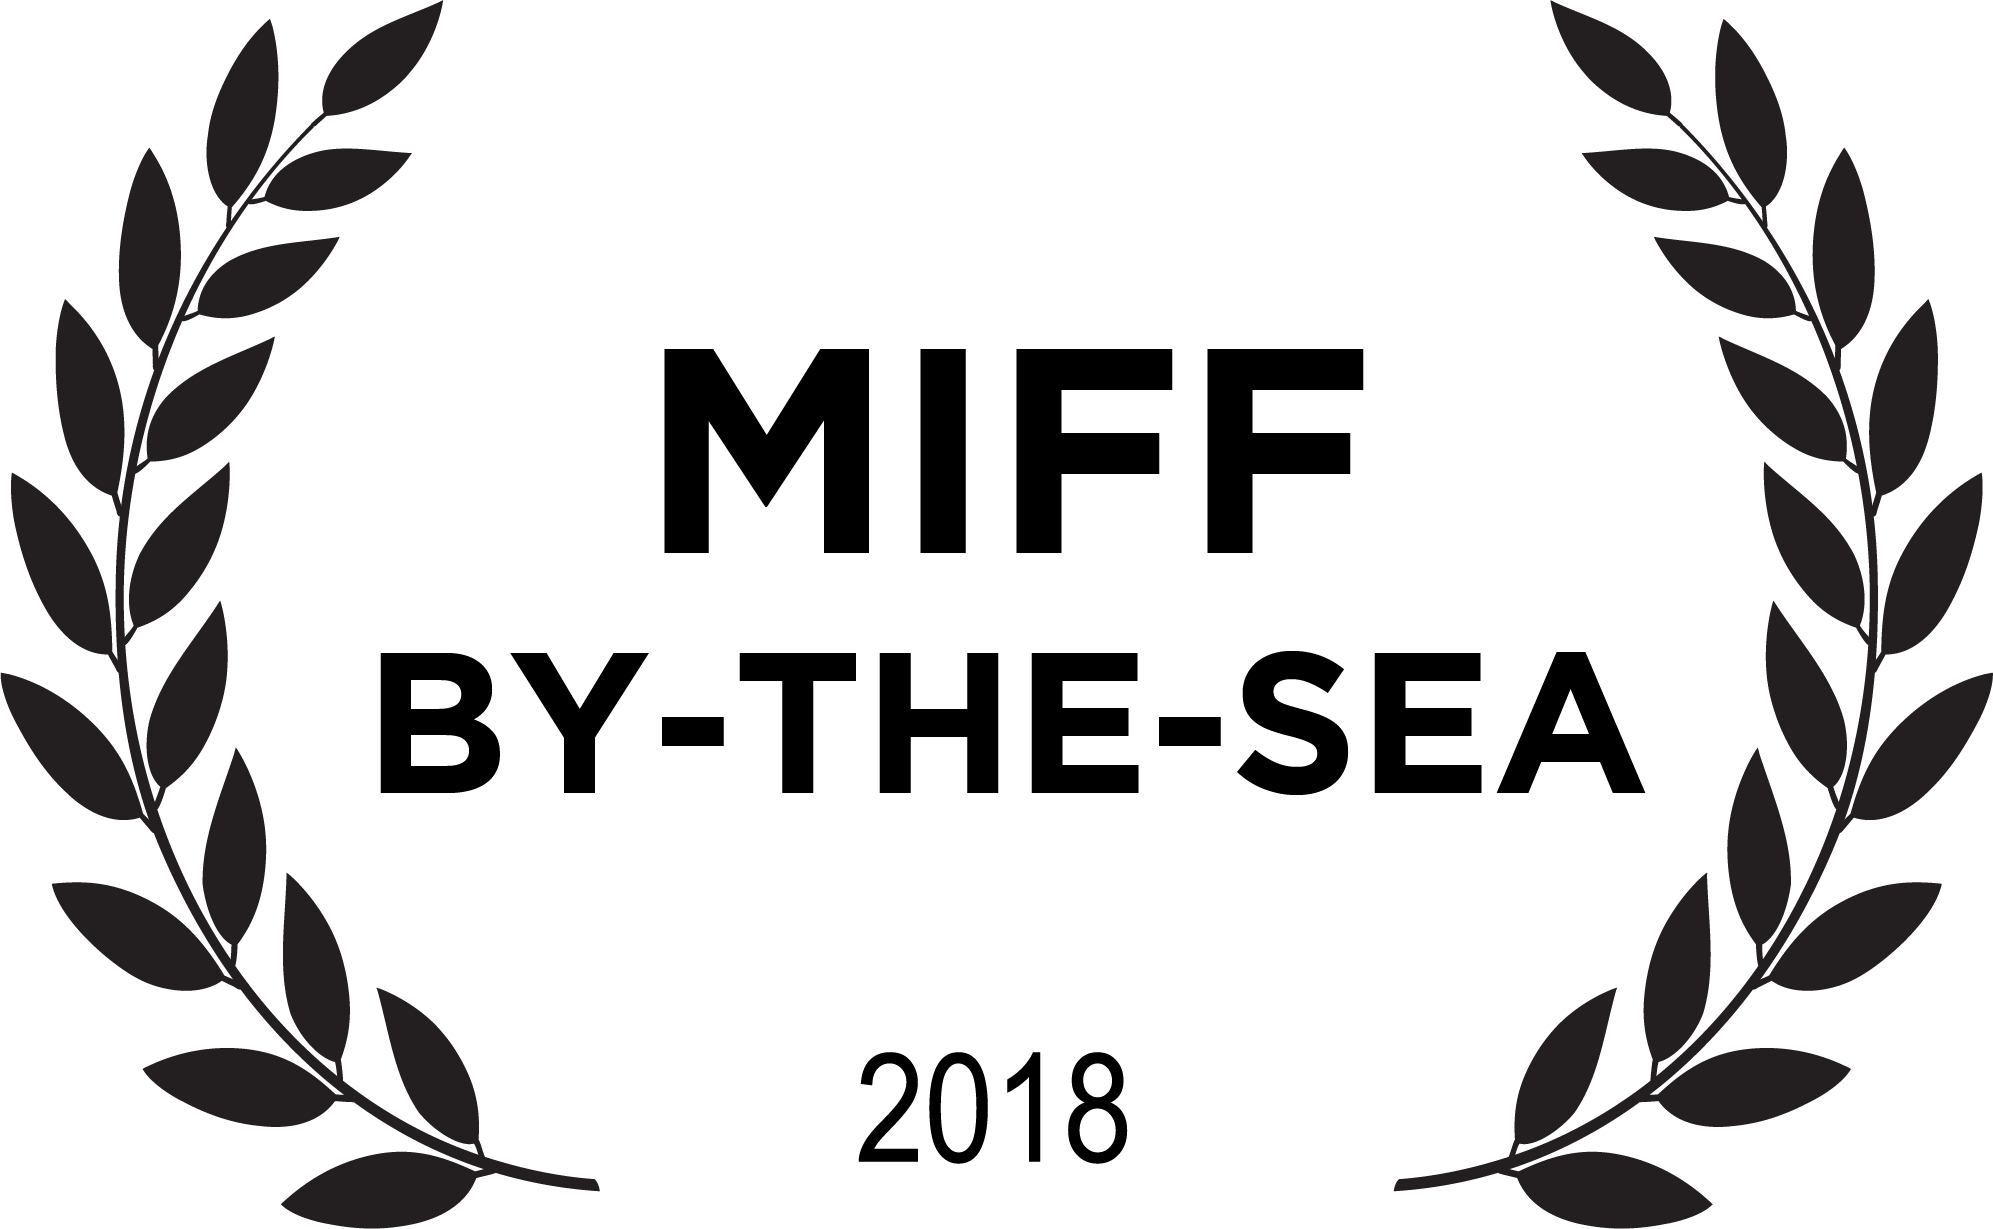 MIFF-BY-THE-SEA Laurel 2018 [Converted] (1).png